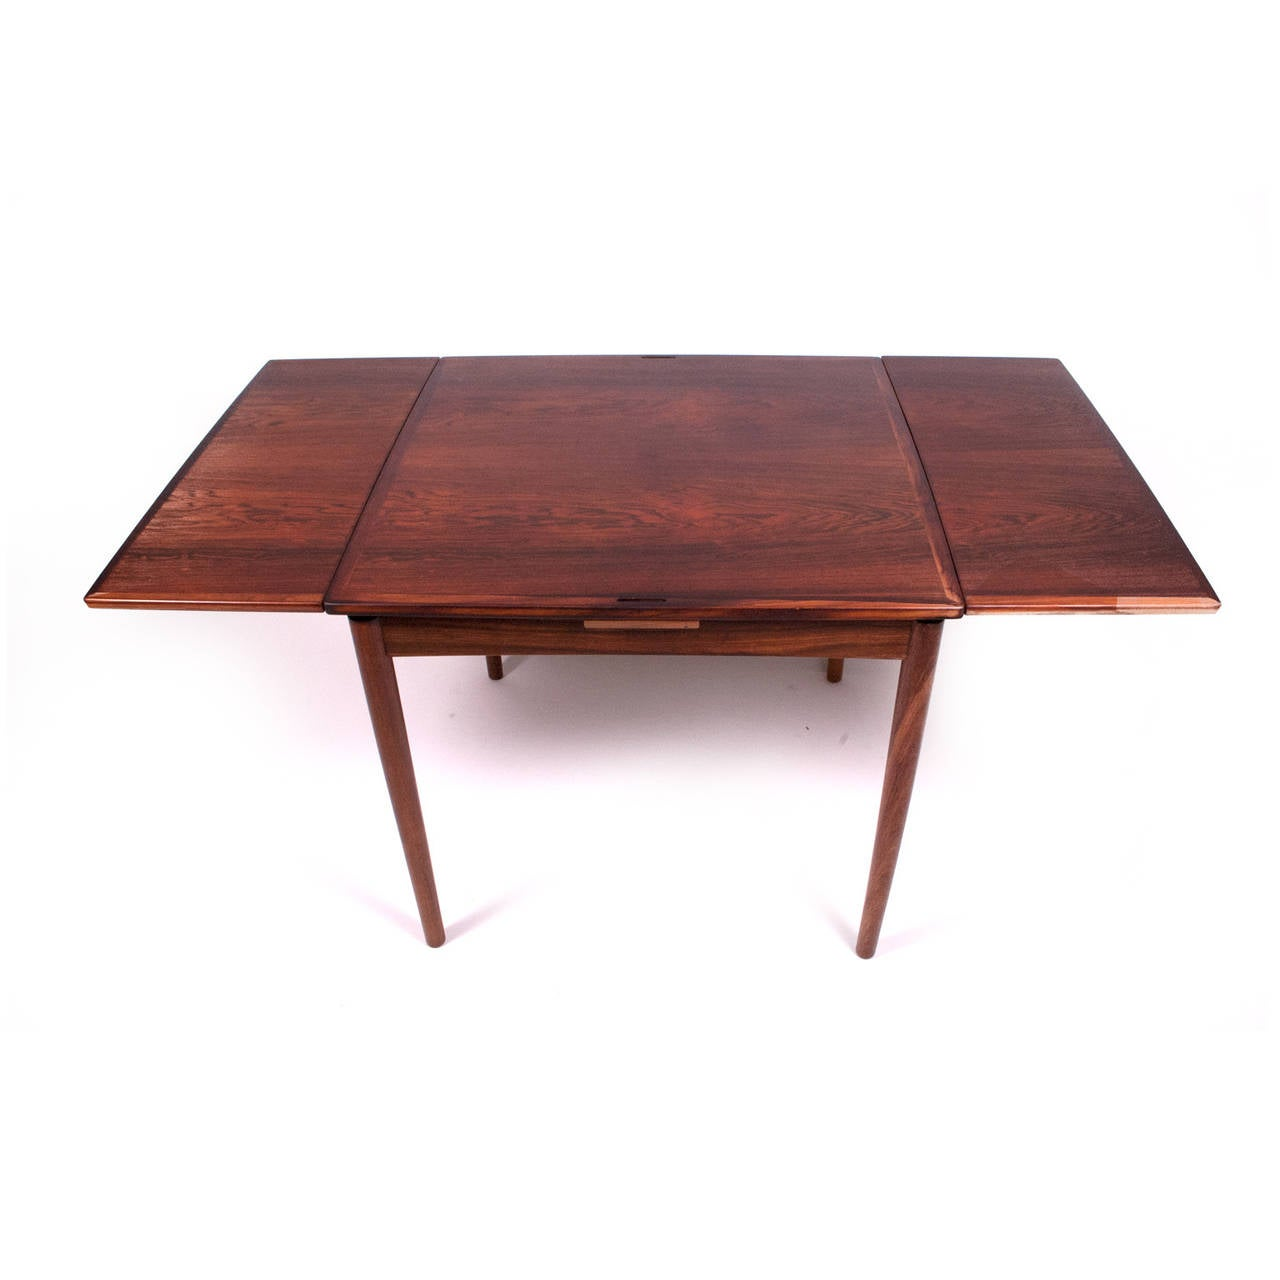 20th Century 1960s Danish Rosewood Sign Game Table Design by Poul Hundevad For Sale